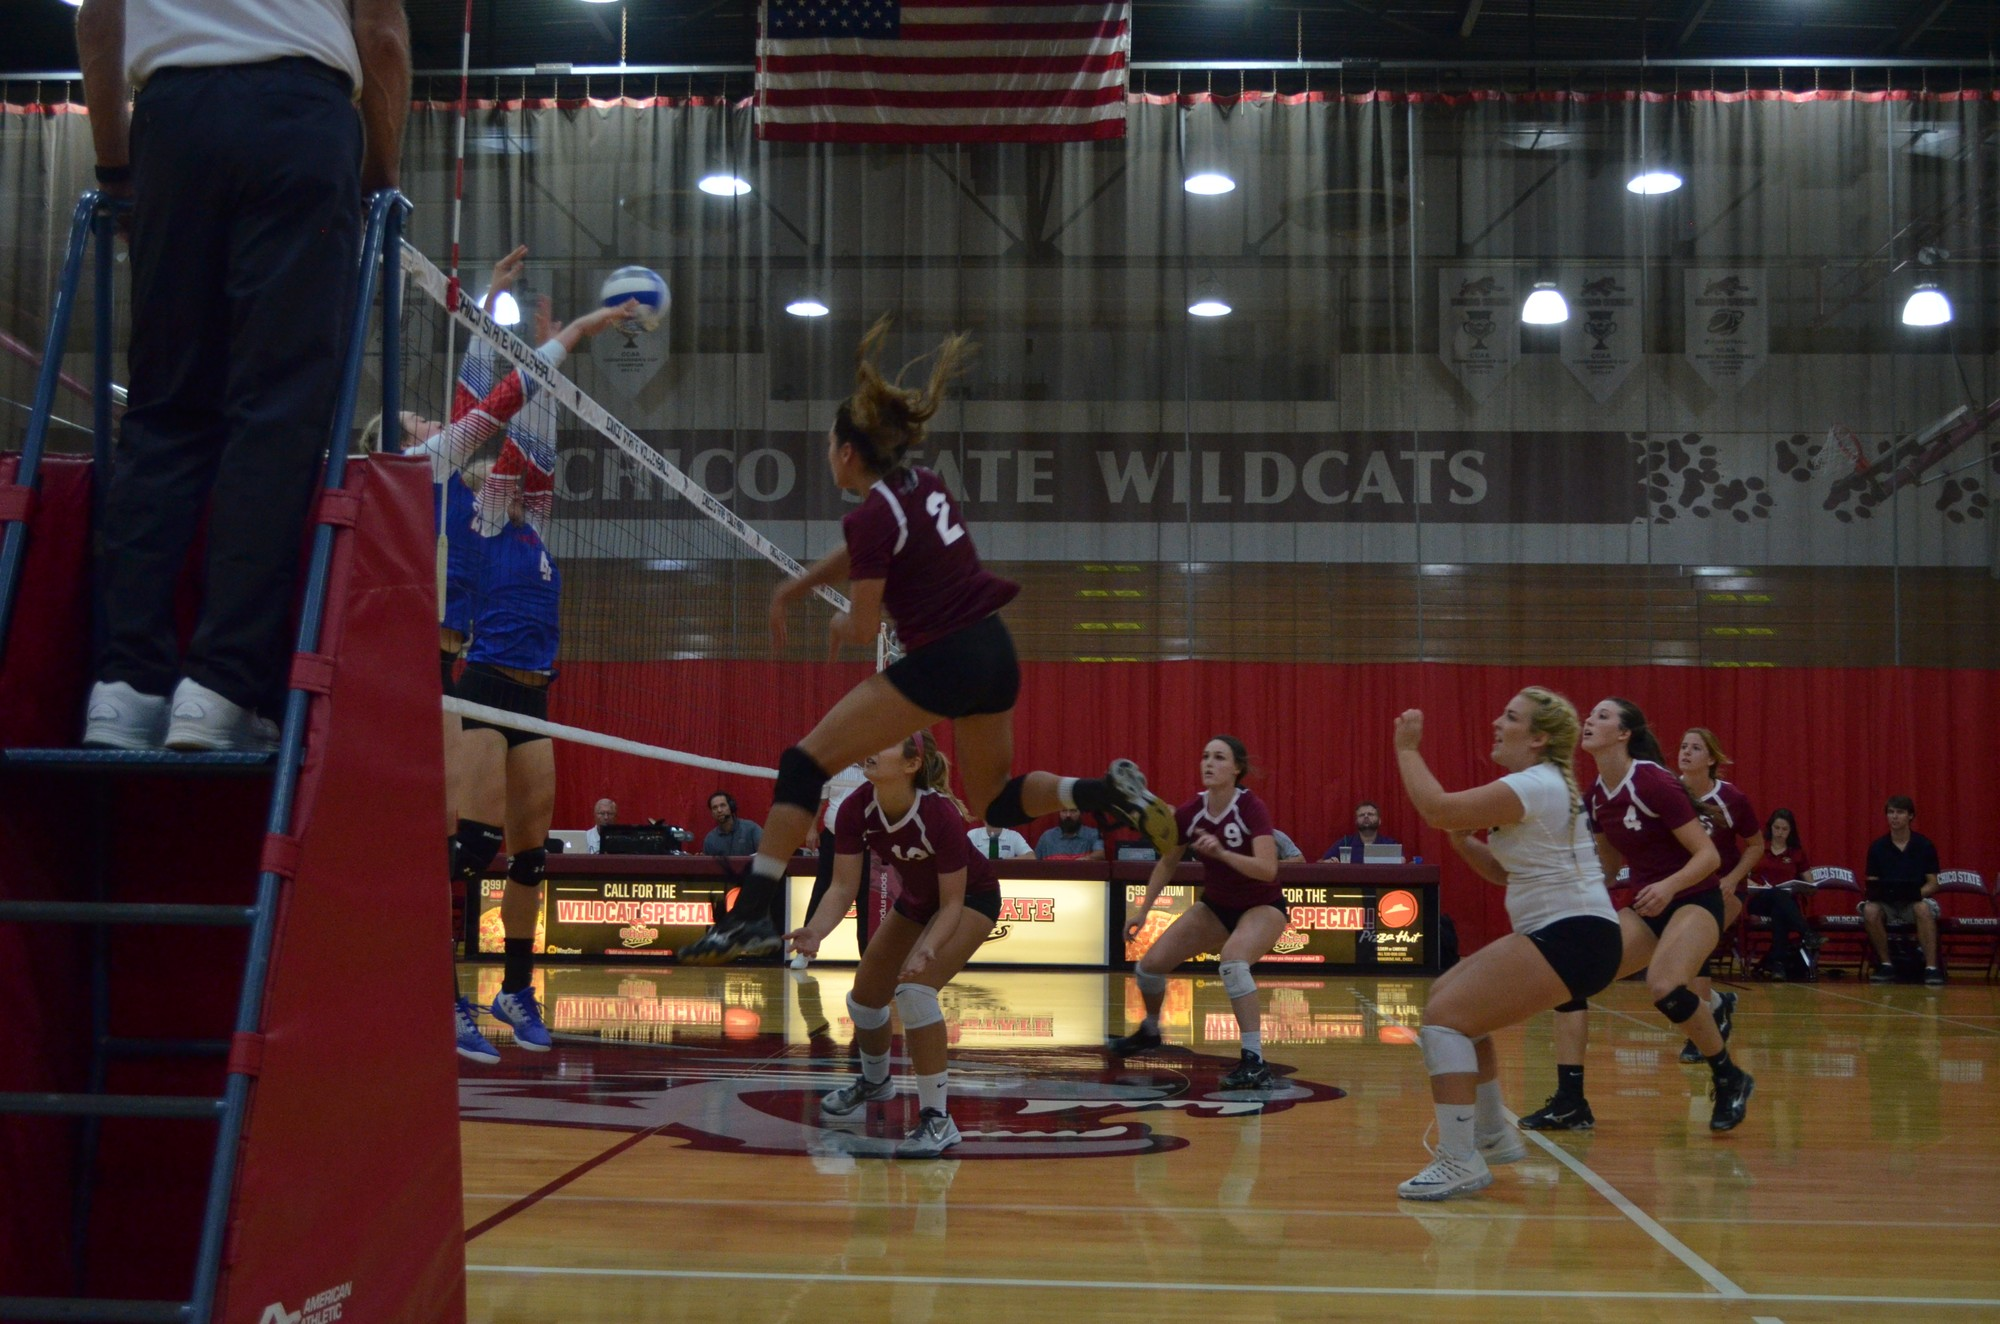 Olivia Mediano delivers a kill during the 'Cats preseason home game. Photo credit: Jordan Jarrell